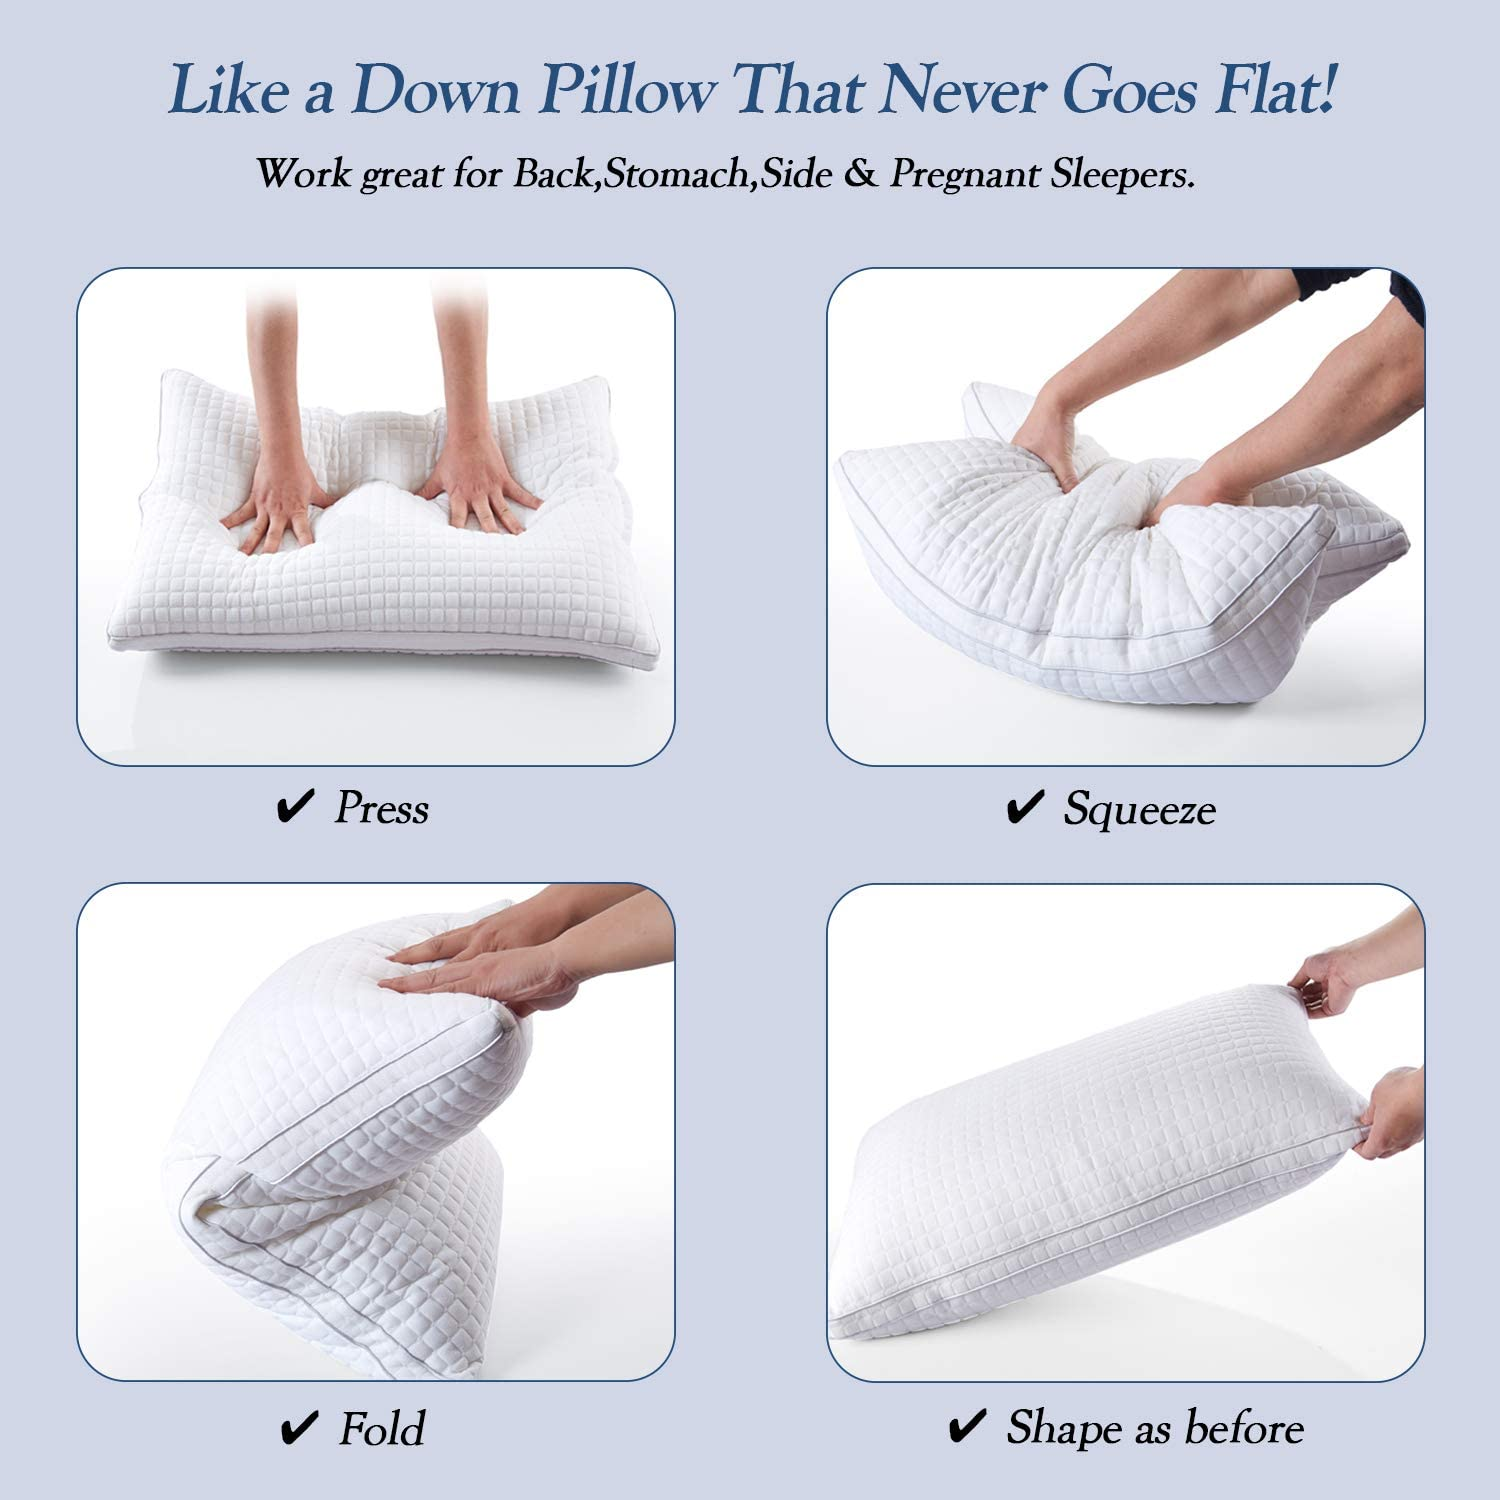 Side Sleepers-Queen Size JOLLYVOGUE 2 Pack Bed Pillows for Sleeping-Down Alternative Sleeping Bed Pillow with Plush Fiber Fill Stomach Adjustable Hotel Pillow for Back